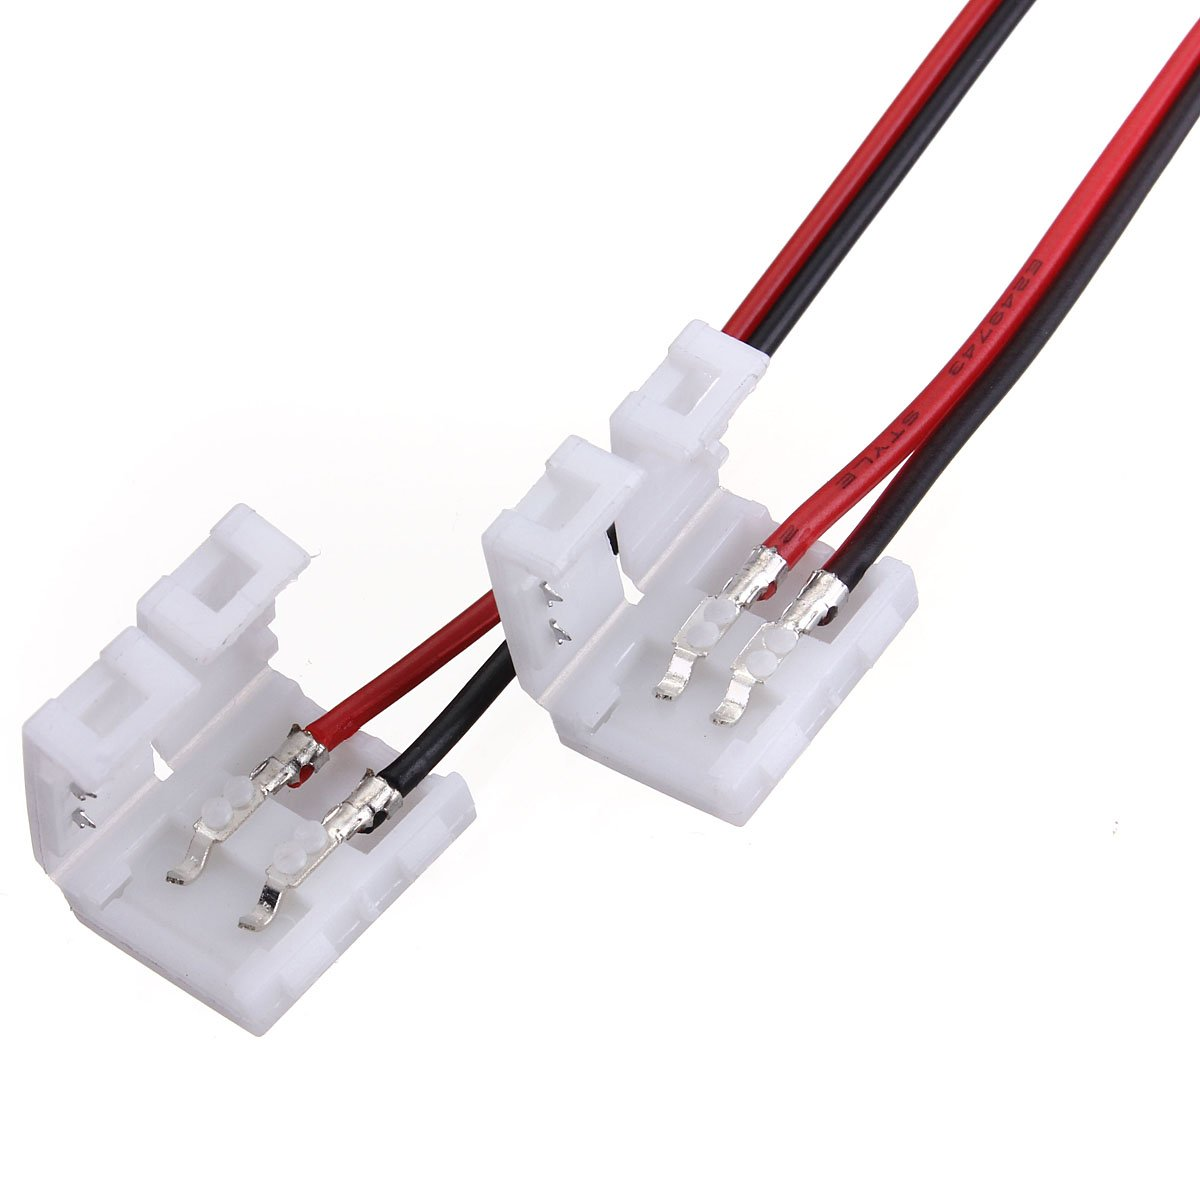 10x2-Pins Connector For Led Strip Wire 3528/5050 With PCB Ribbon